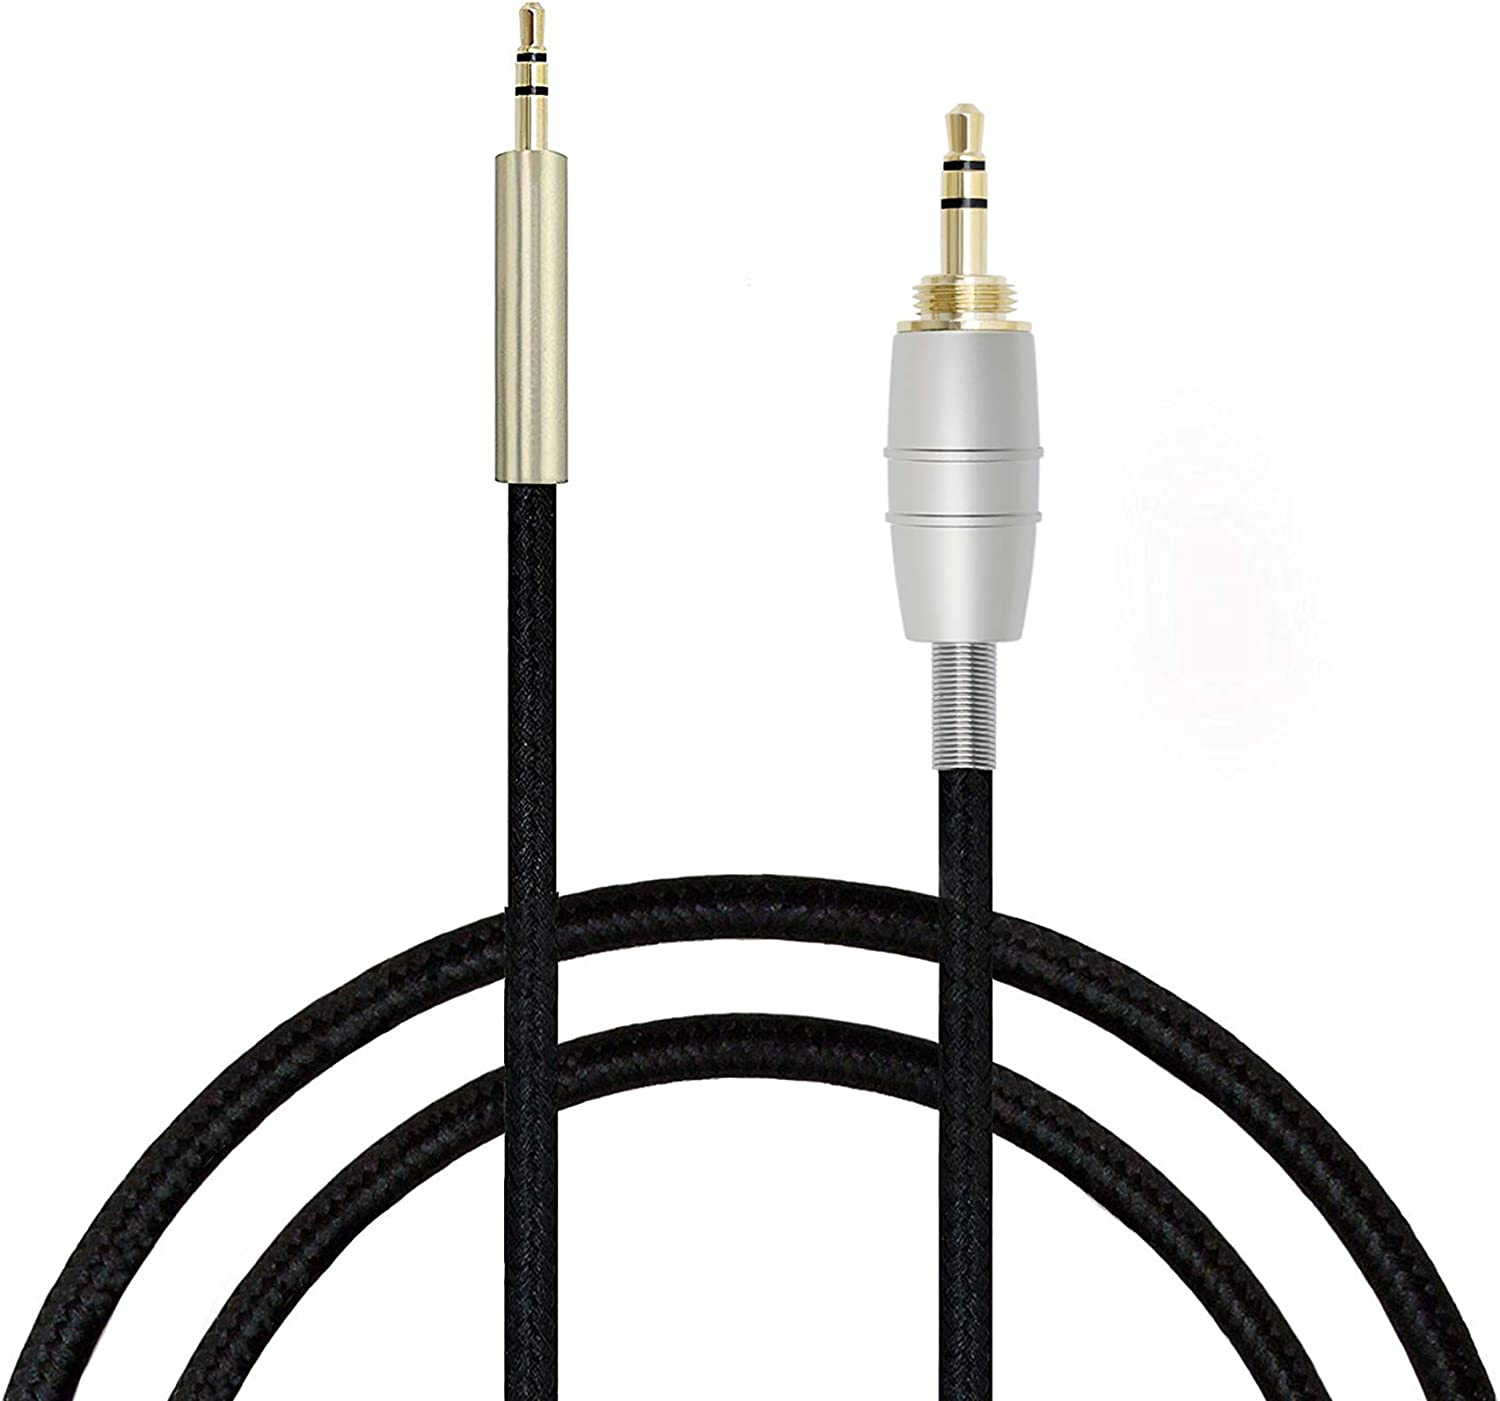 MiCity Replacement Audio Extension Cable Upgrade Cord for Bose Around-Ear 2 AE2 AE2i AE2w Headphones/ 1.2m